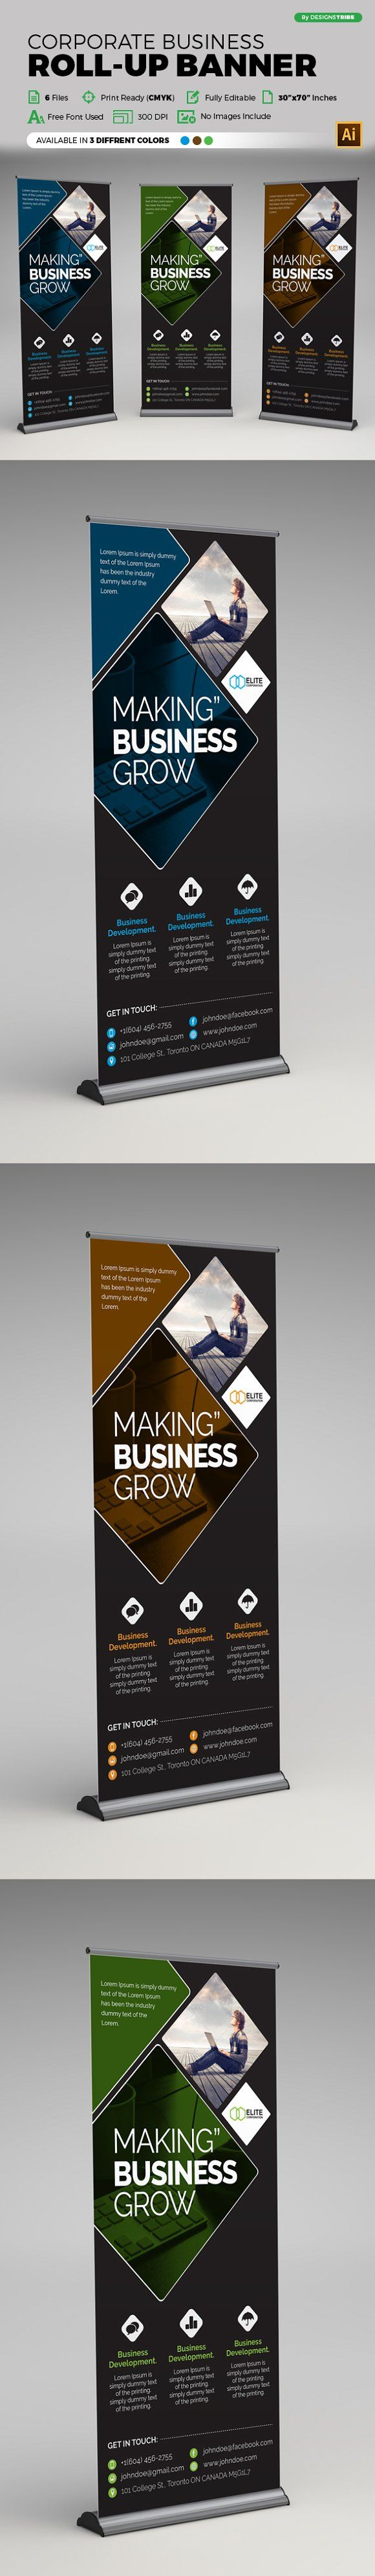 Corporate Business Roll-up Banner by Design'sTRIBE on @creativemarket